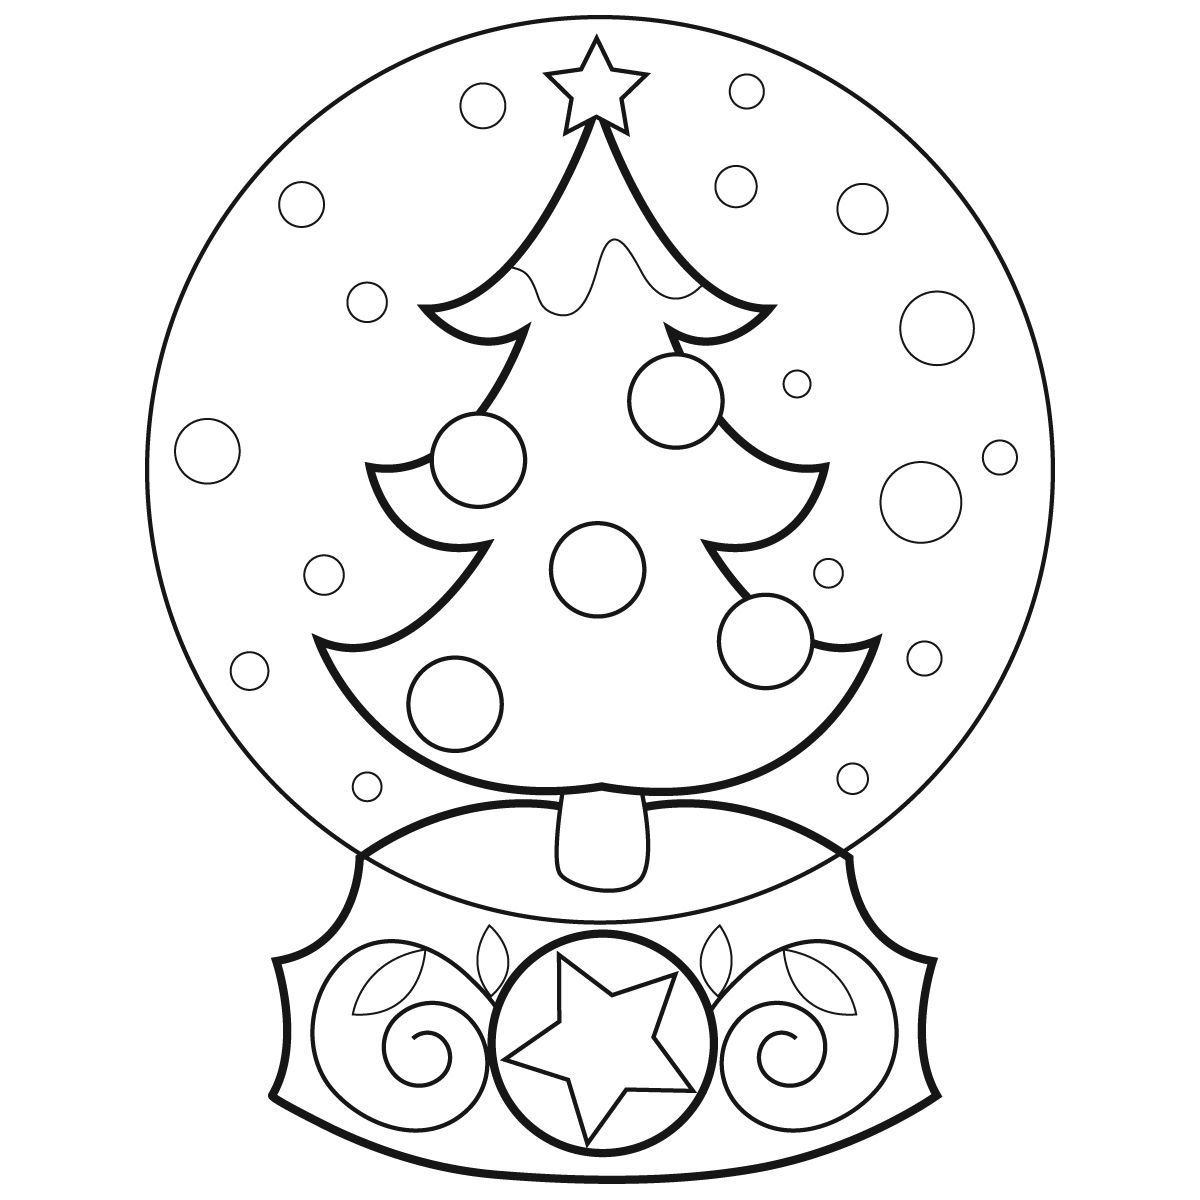 globe coloring page - snow globe coloring page